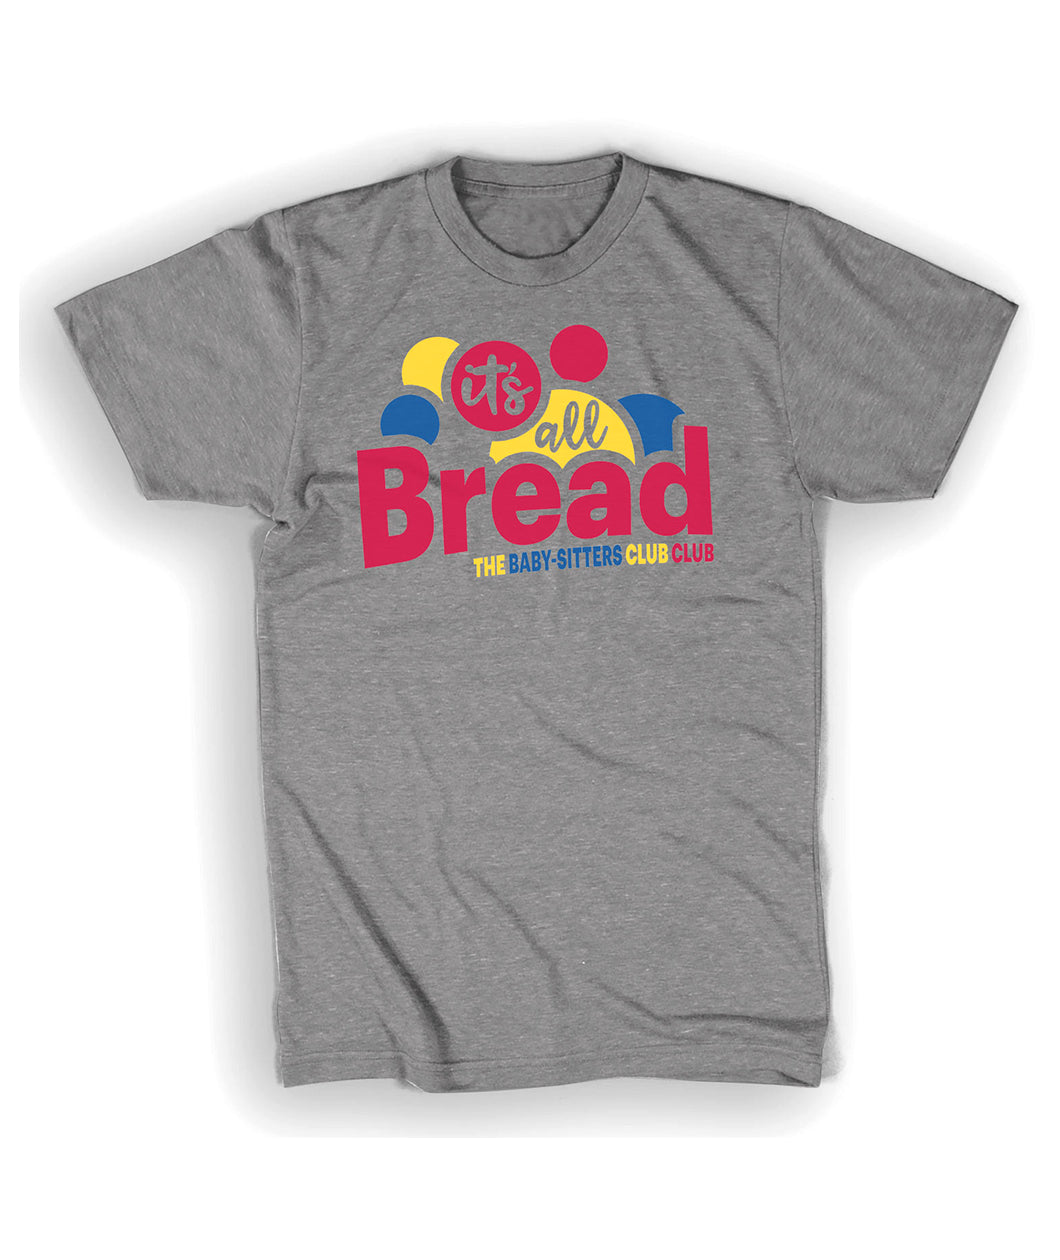 The BSCC Bread Shirt